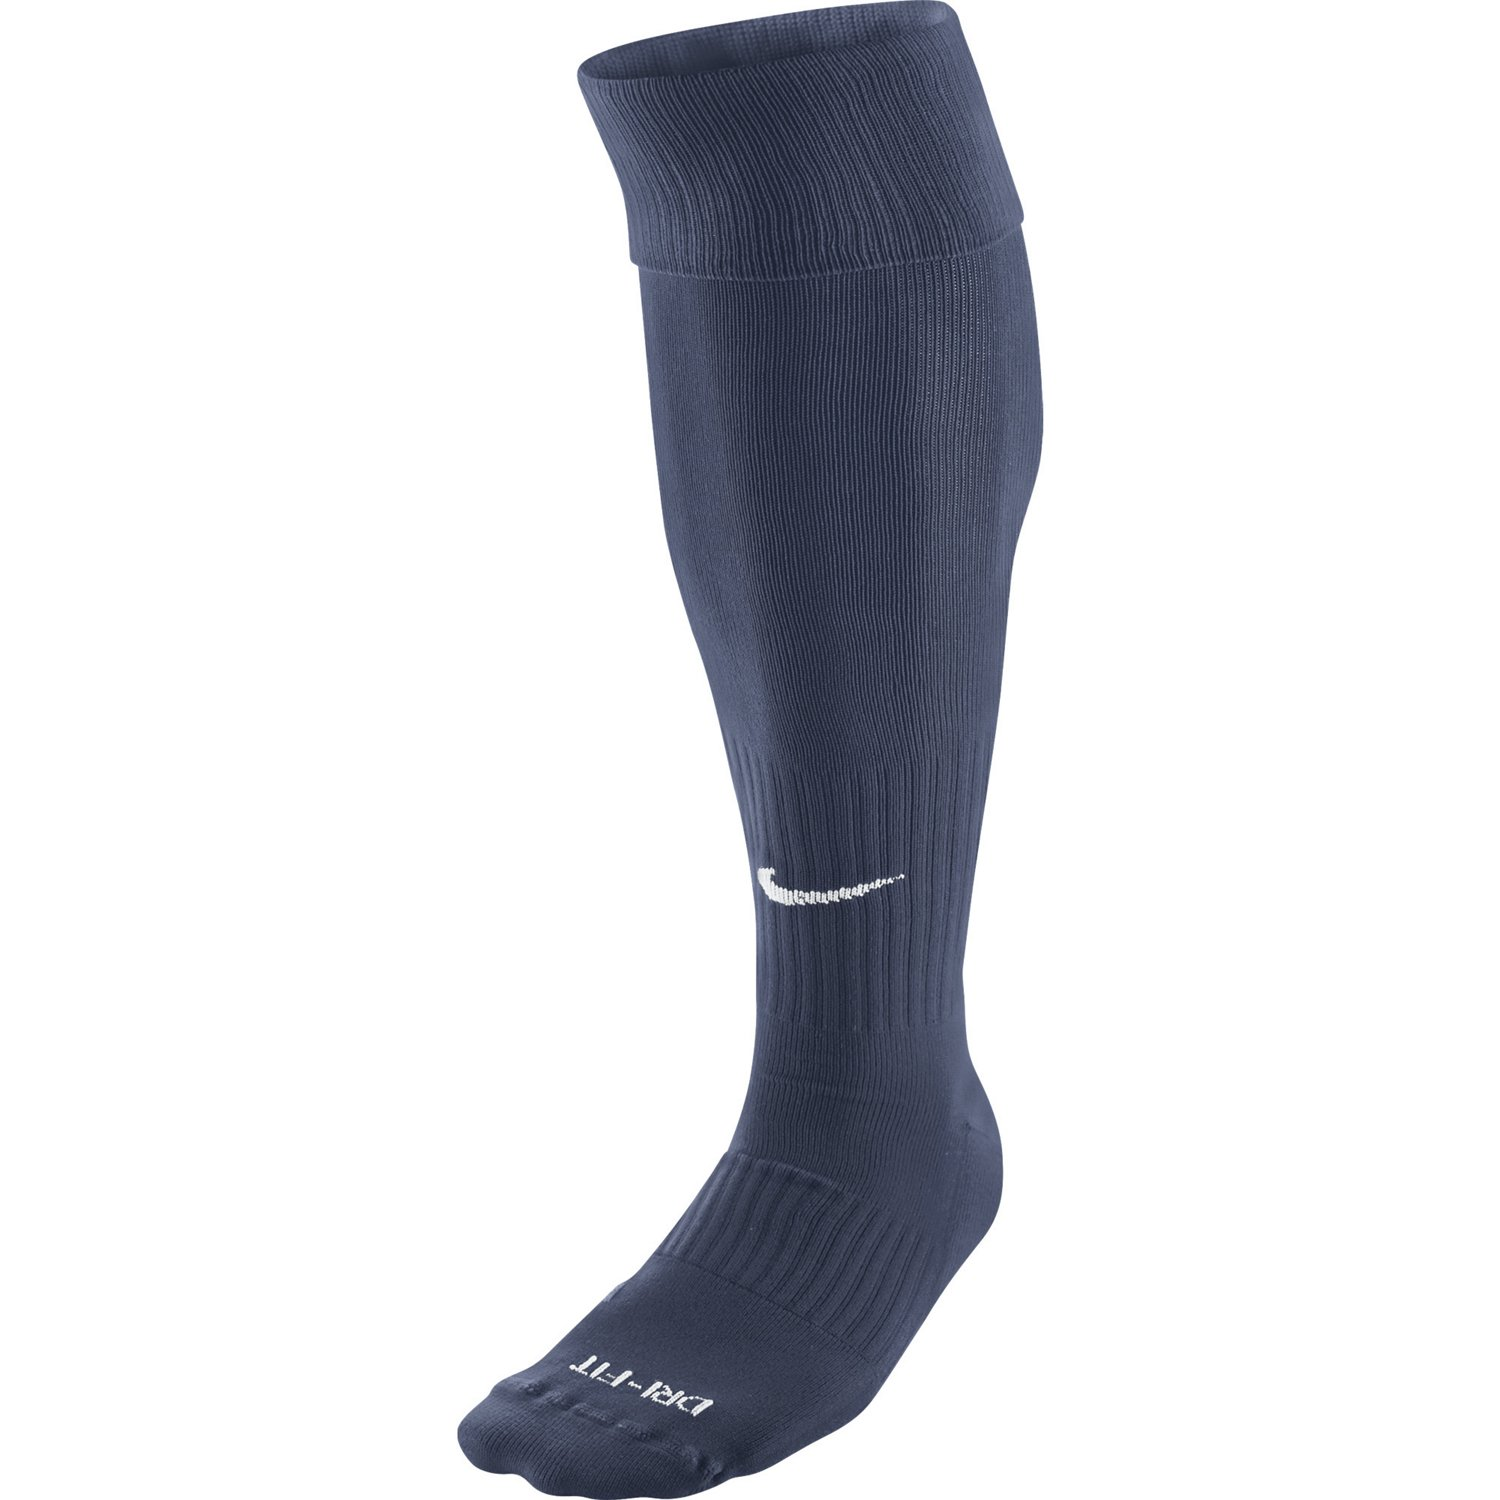 ae3c7794fb73 Nike Adults  Dri-FIT Classic Soccer Socks